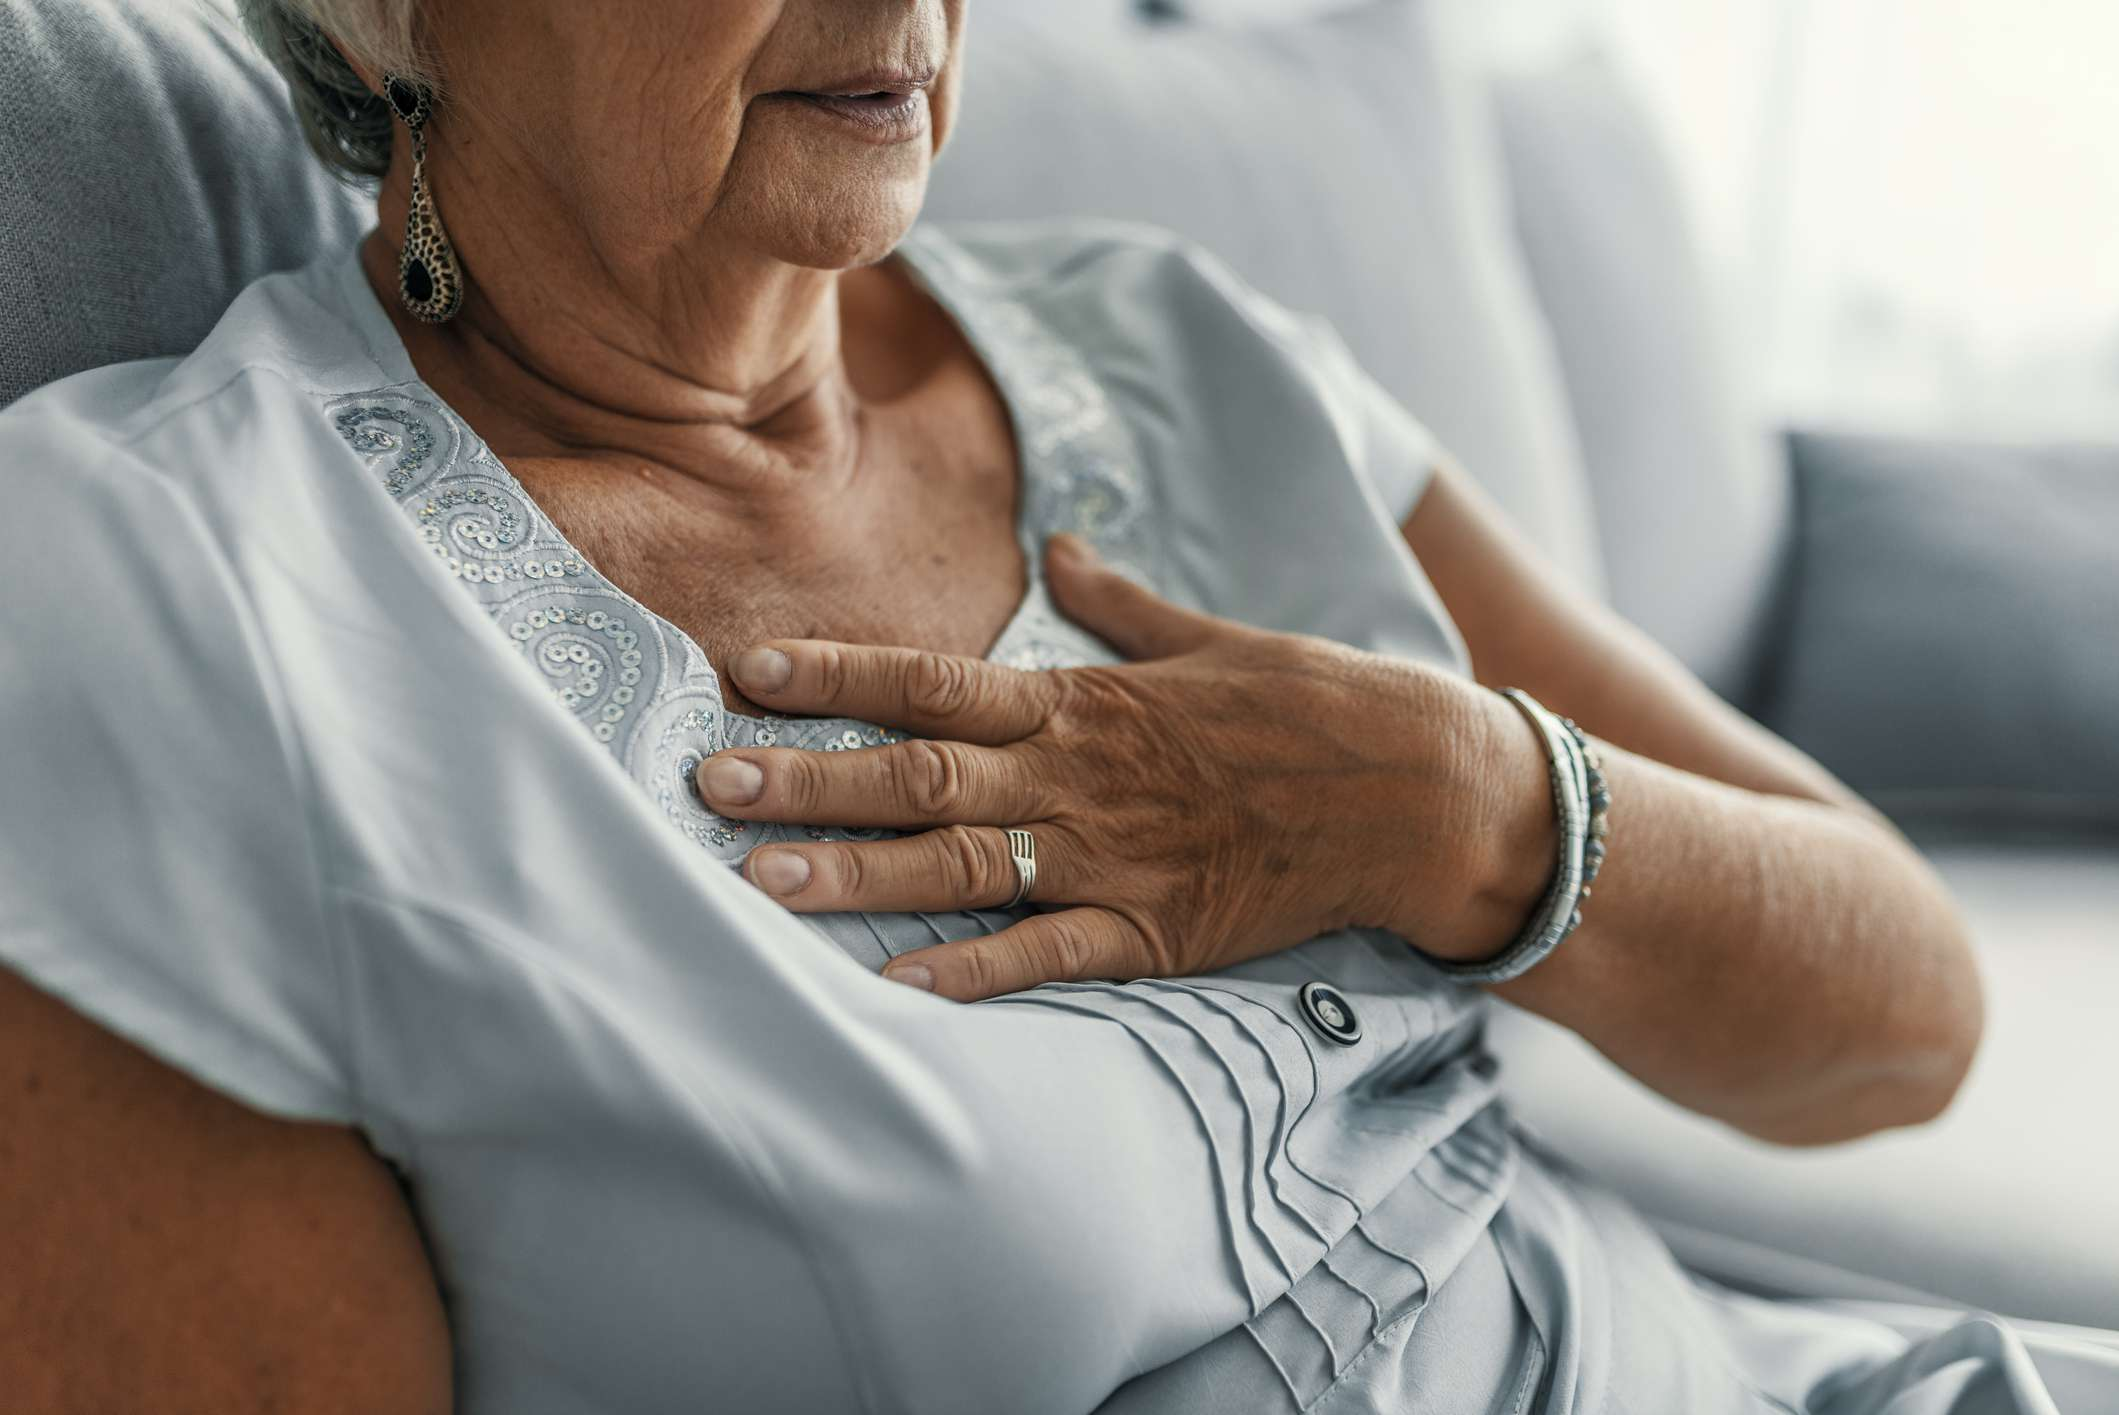 a woman clutching her chest in pain